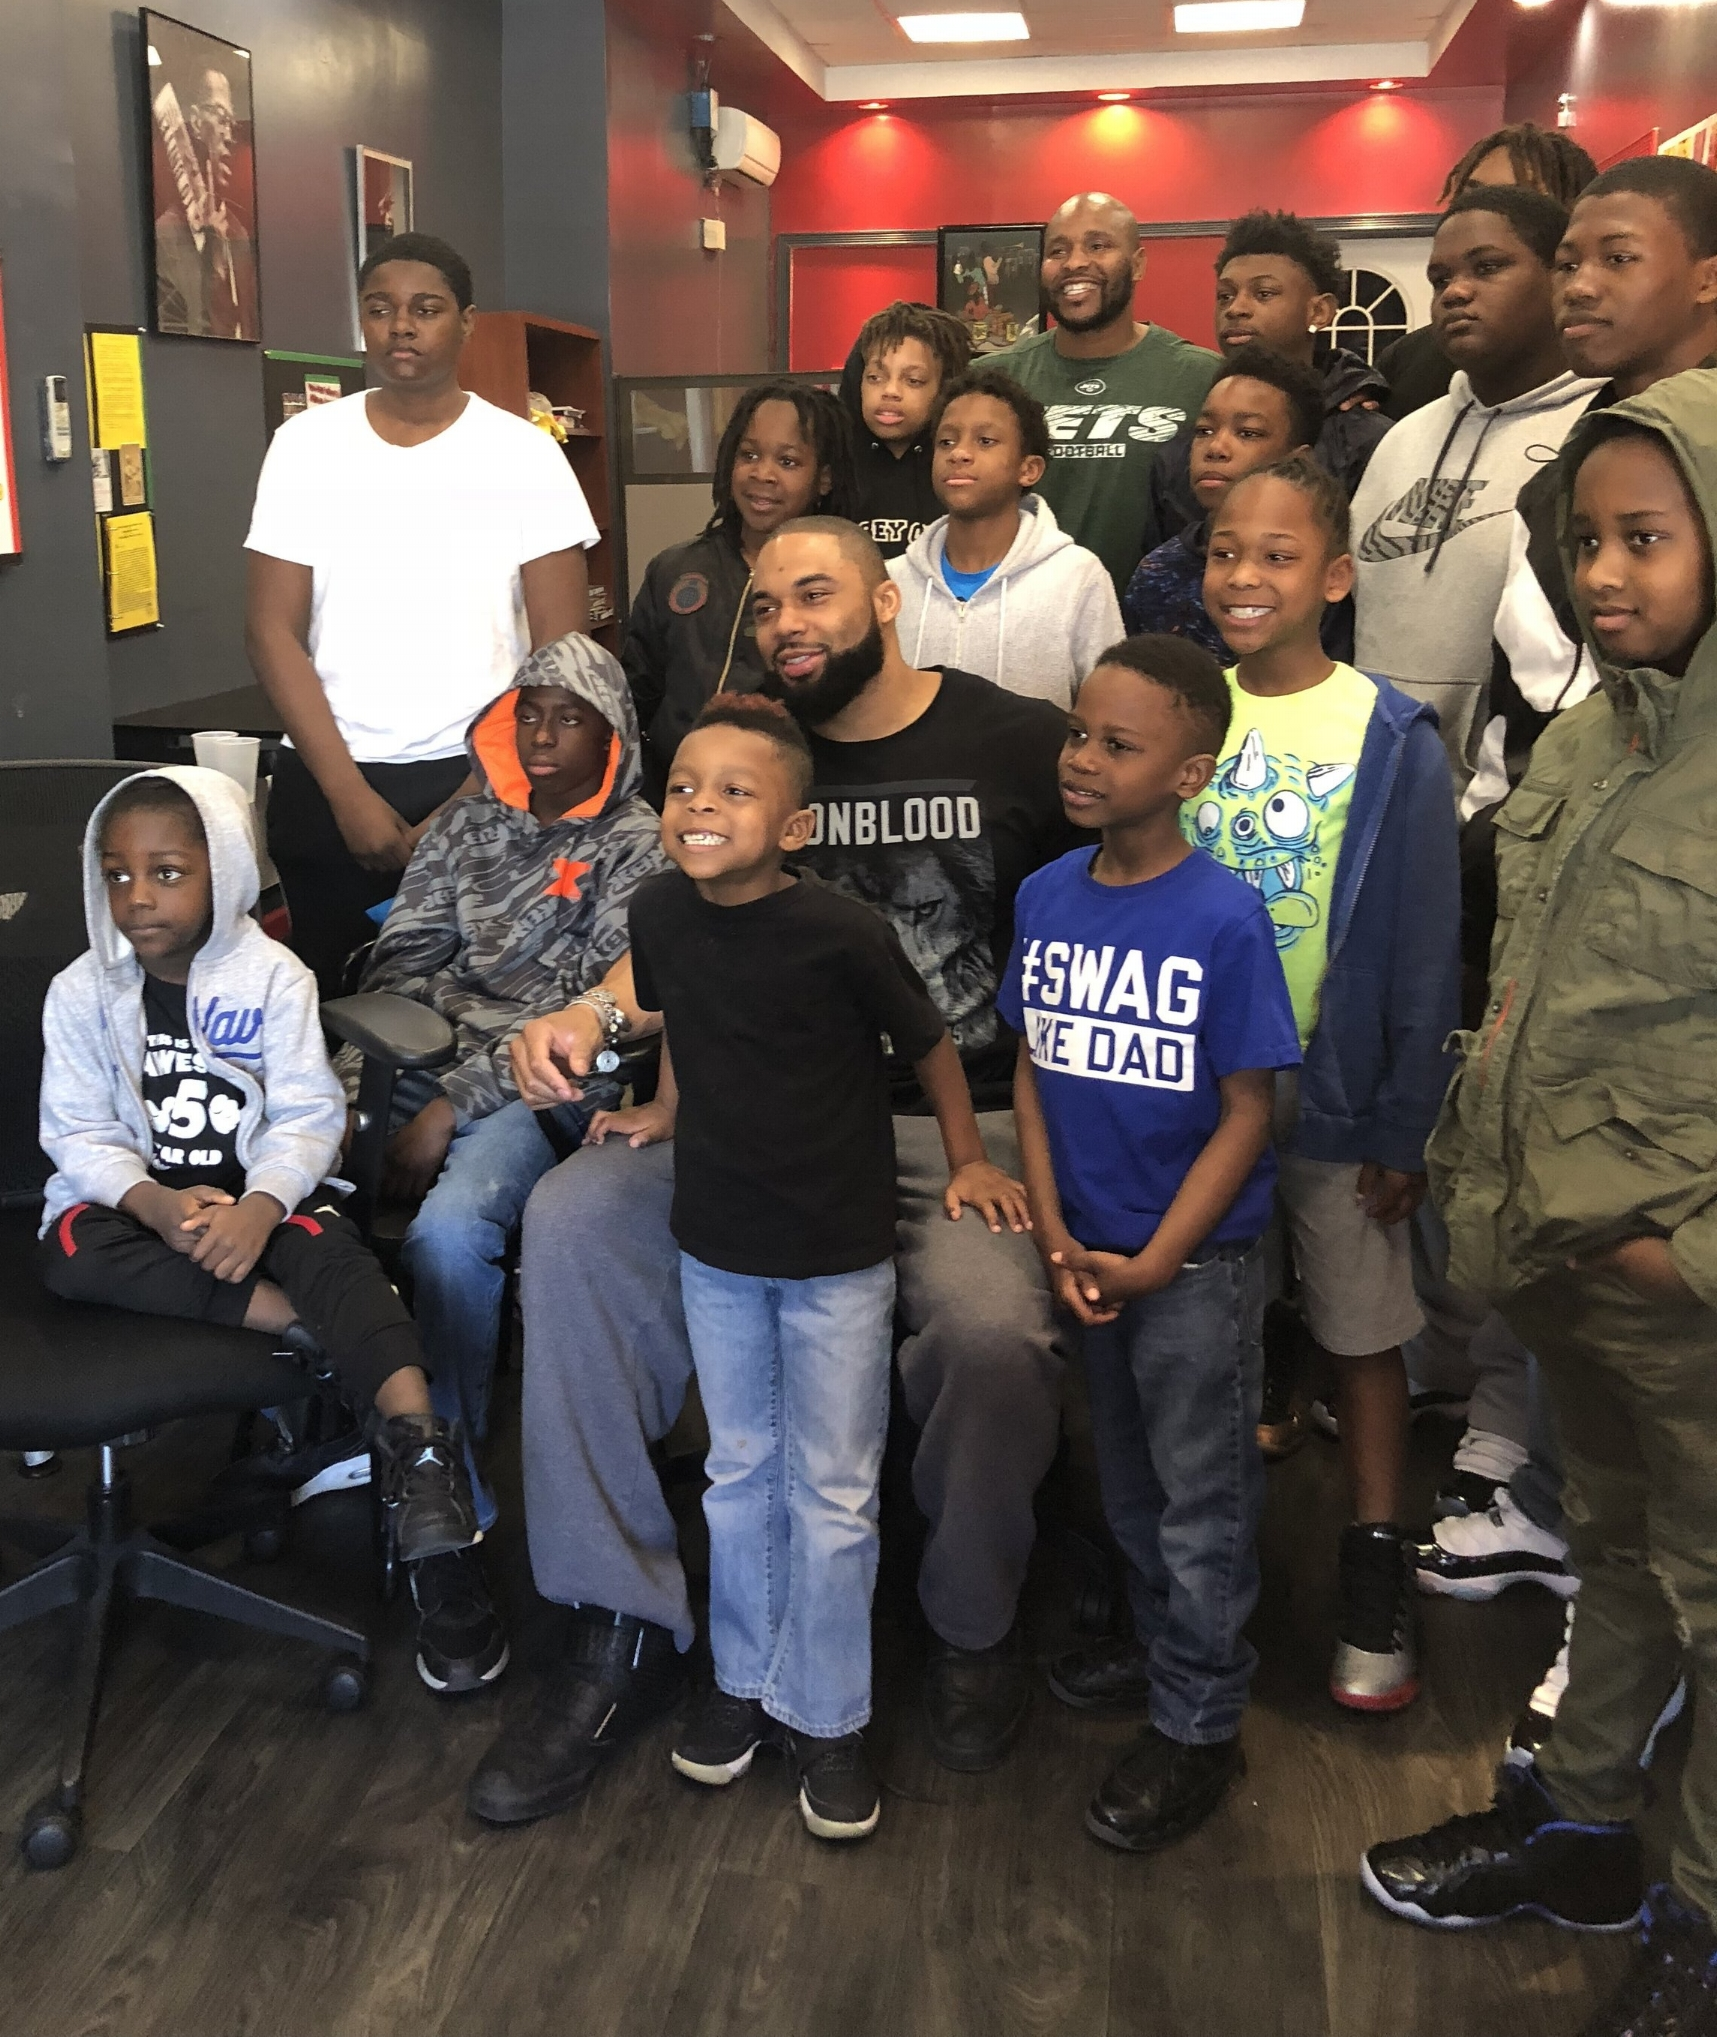 Vernon Gholston visits Jersey City youth